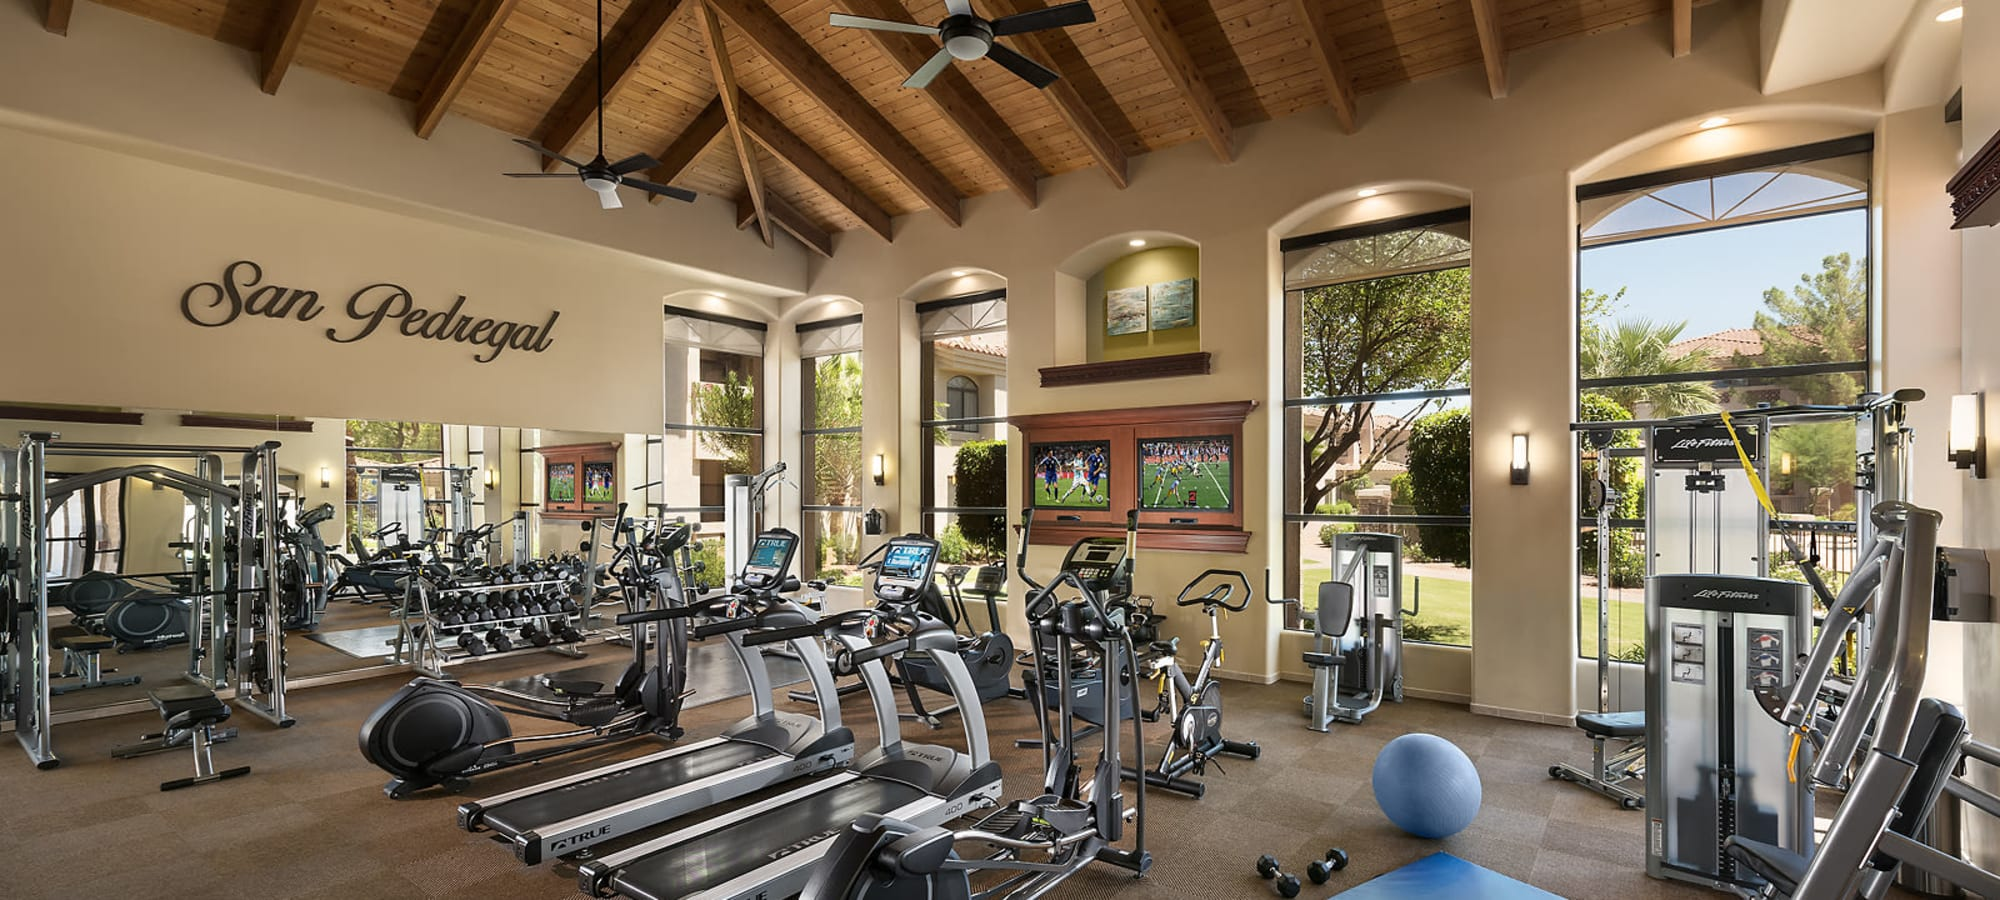 24 hour resident fitness center at San Pedregal in Phoenix, Arizona